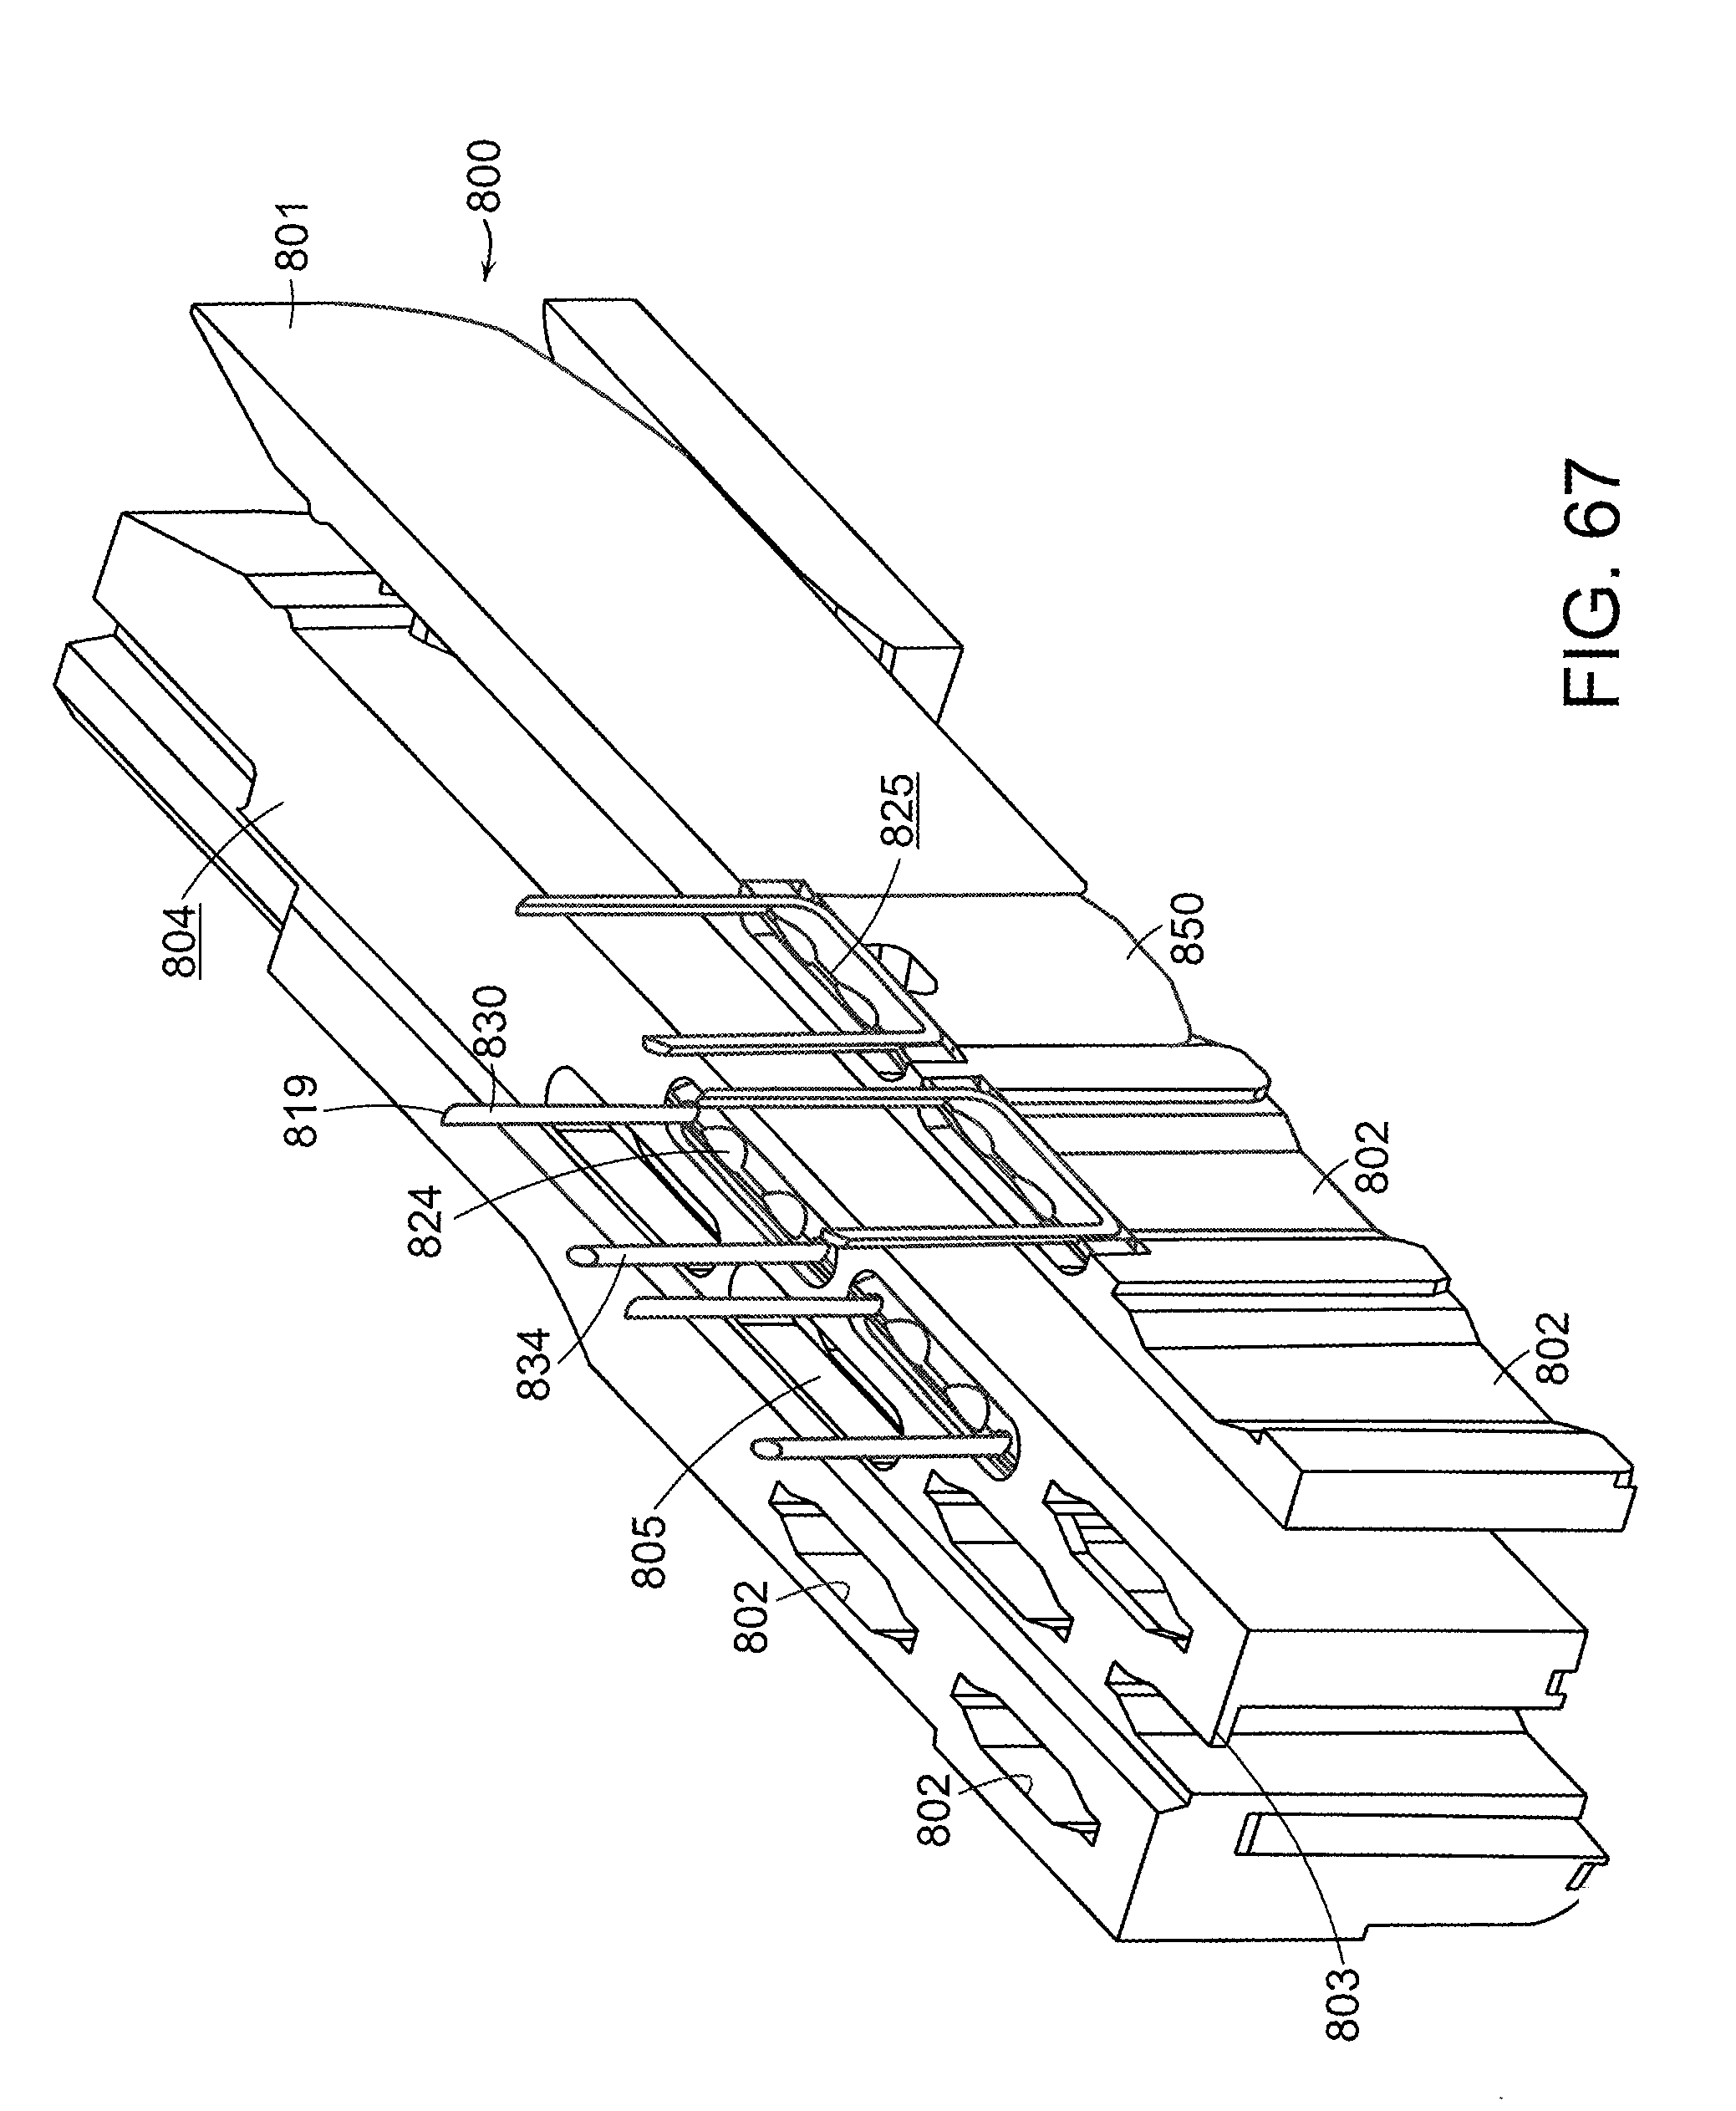 Us9307988b2 staple cartridges for forming staples having differing formed staple heights patents